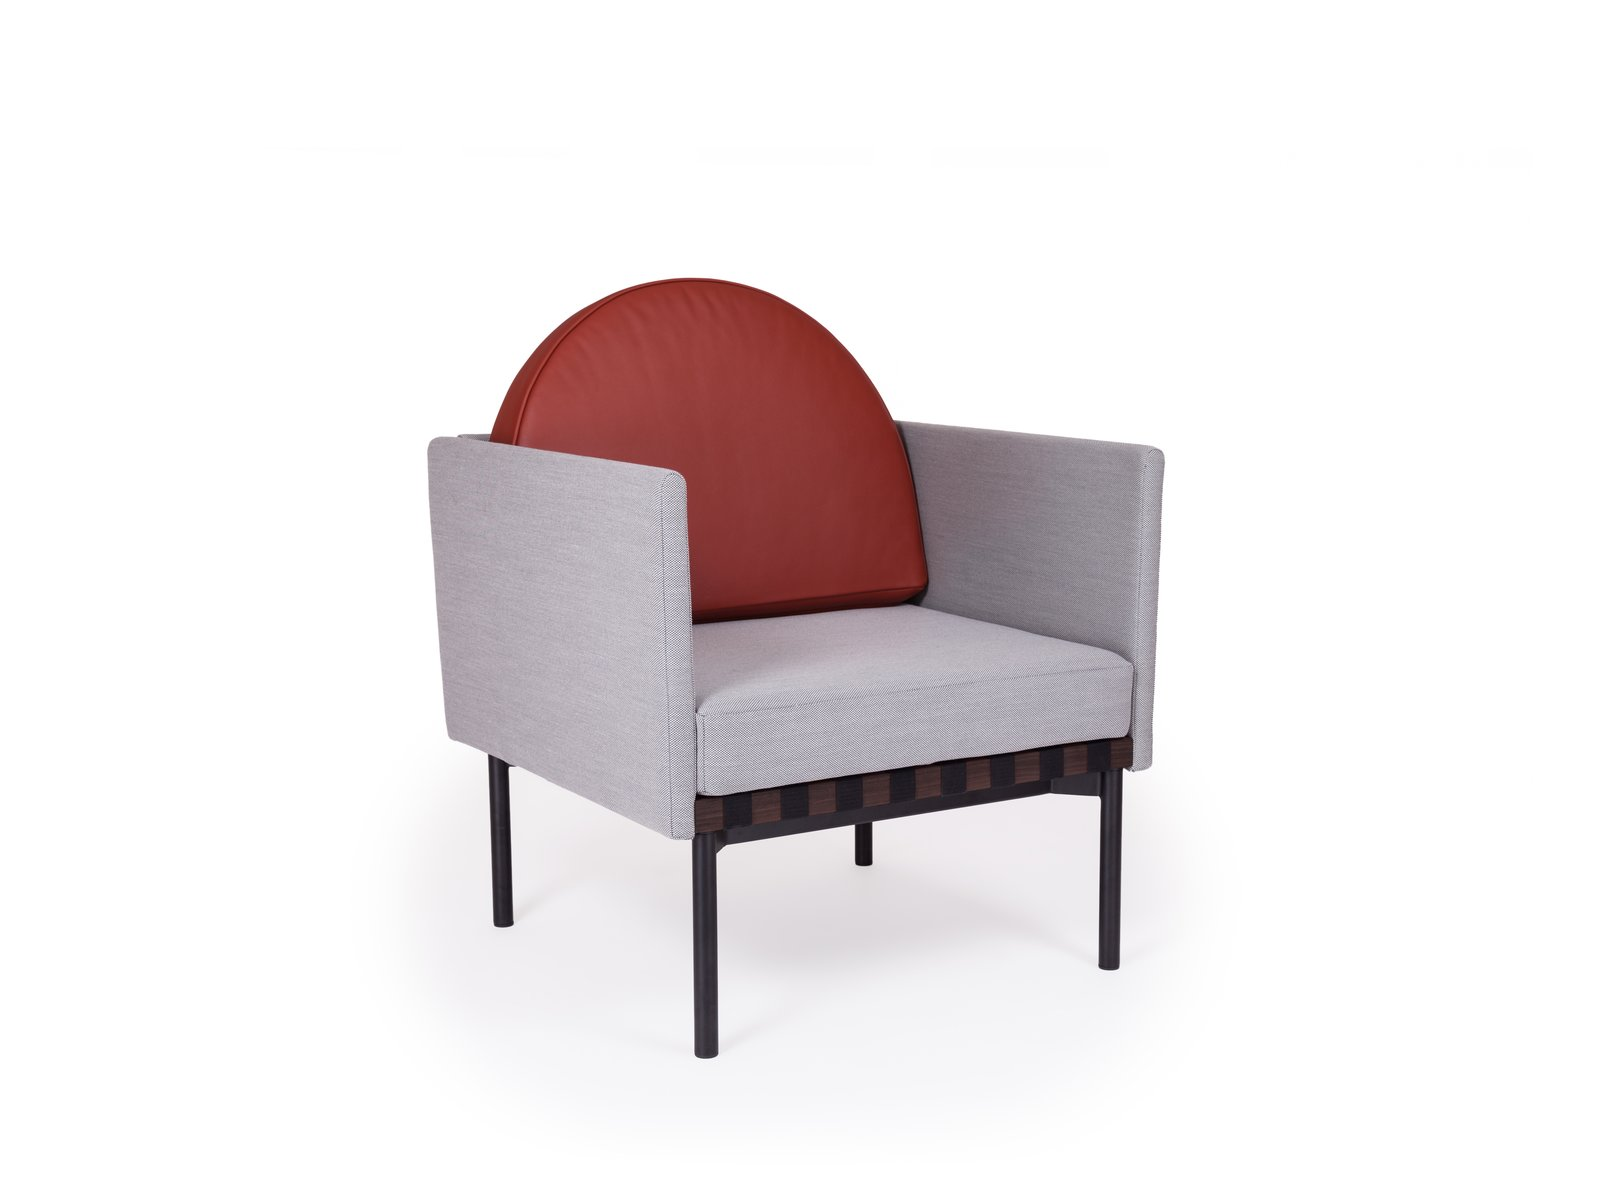 Grid Armchair   Design duo Pool's modular sofa system for Petite Friture, which includes  a graphic armchair, started as a send-up of the Bauhaus.  petitefriture.com